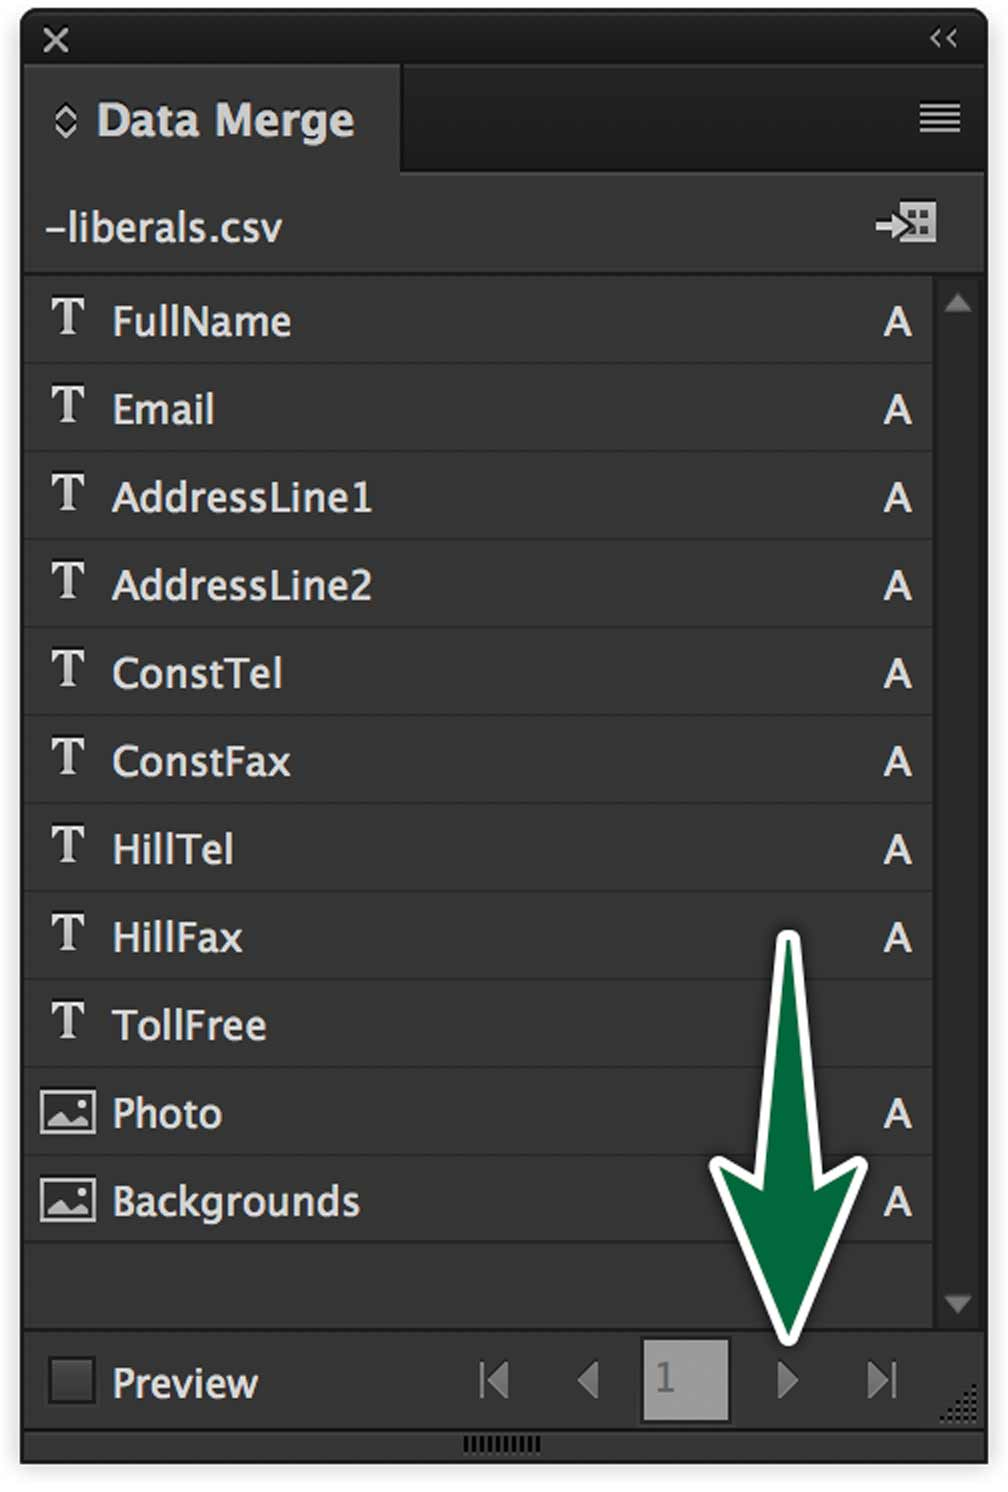 indesign-data-merge-panel-preview